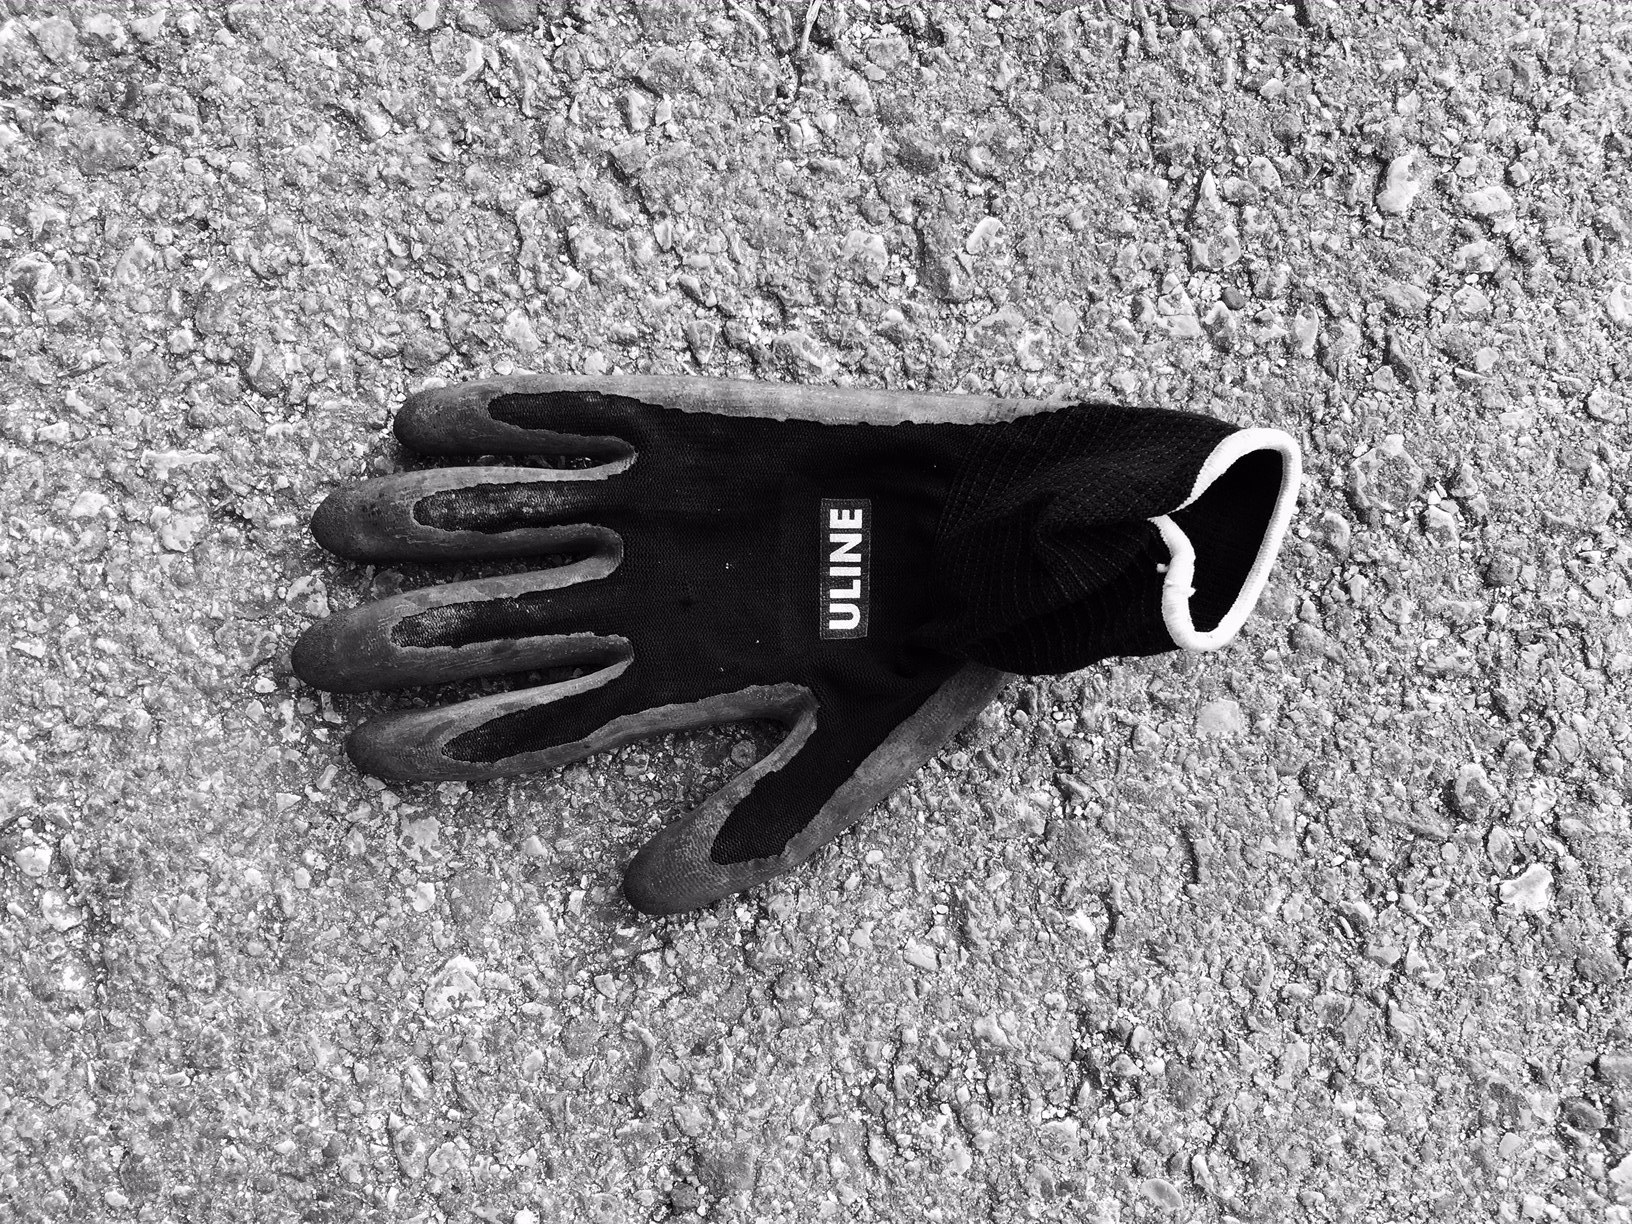 The ubiquitous safety glove, surprisingly new,found on the side of a busy feeder road.